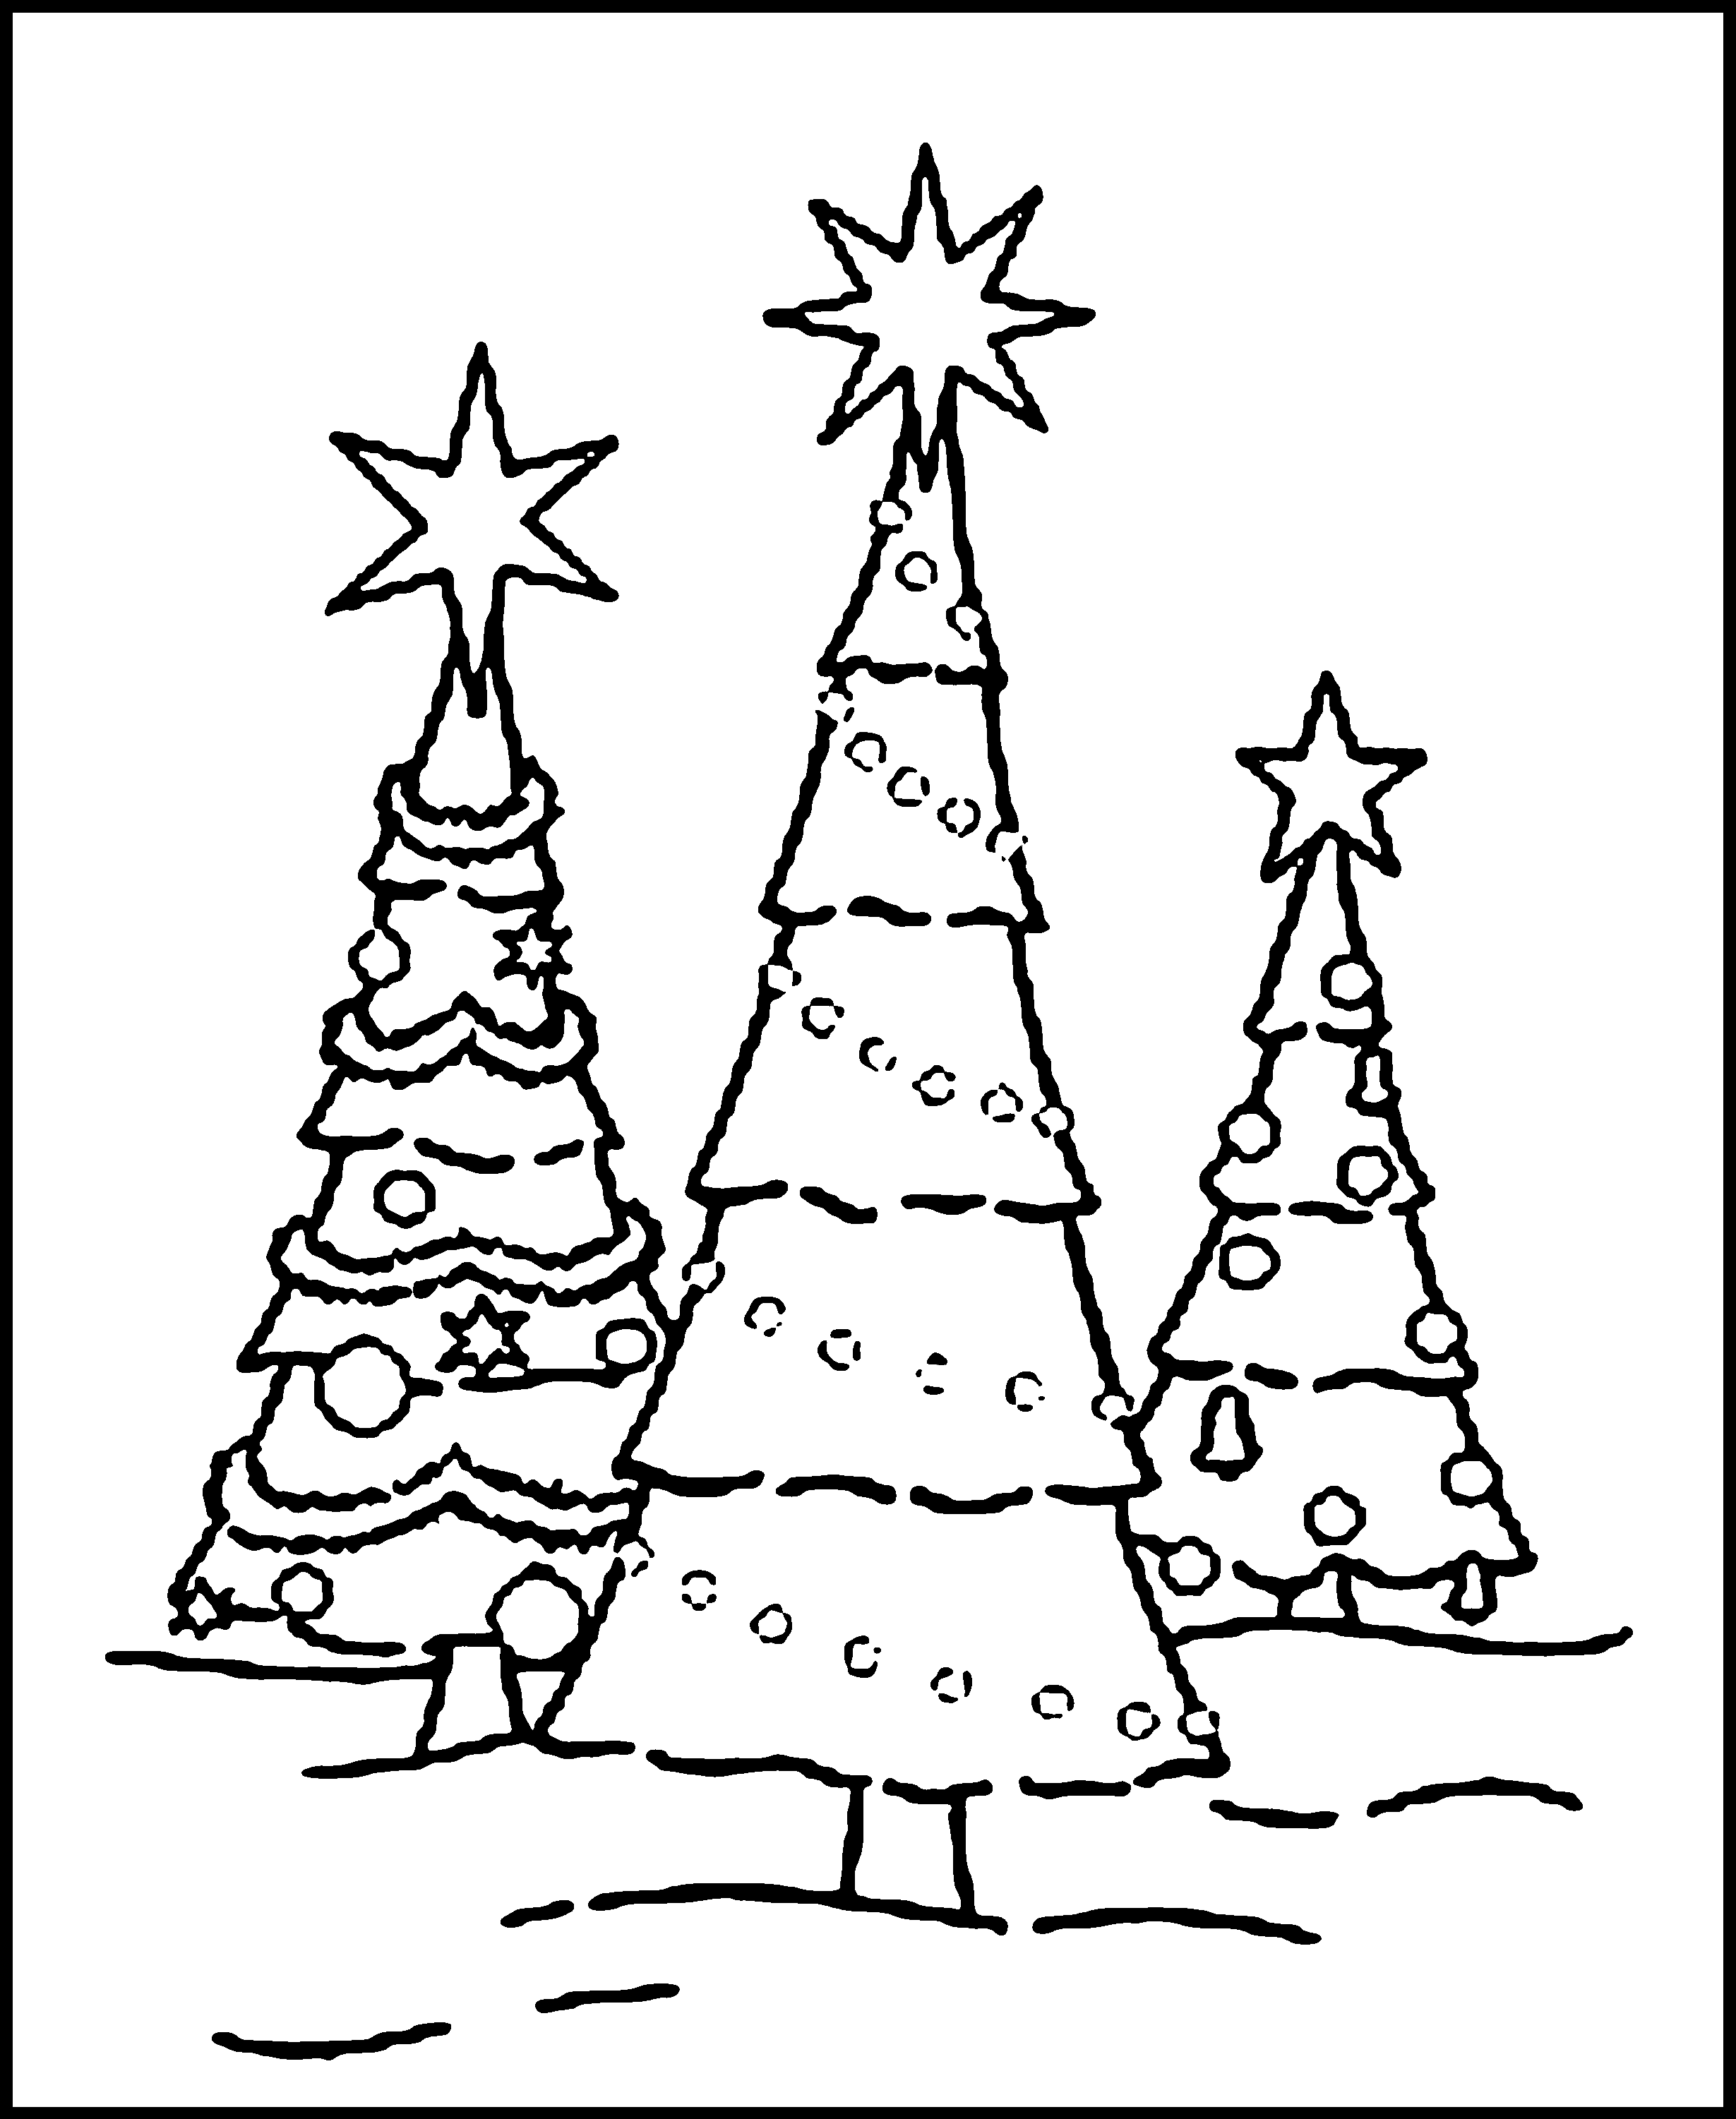 Kids coloring pages christmas trees printable - Christmas Tree Color Pages